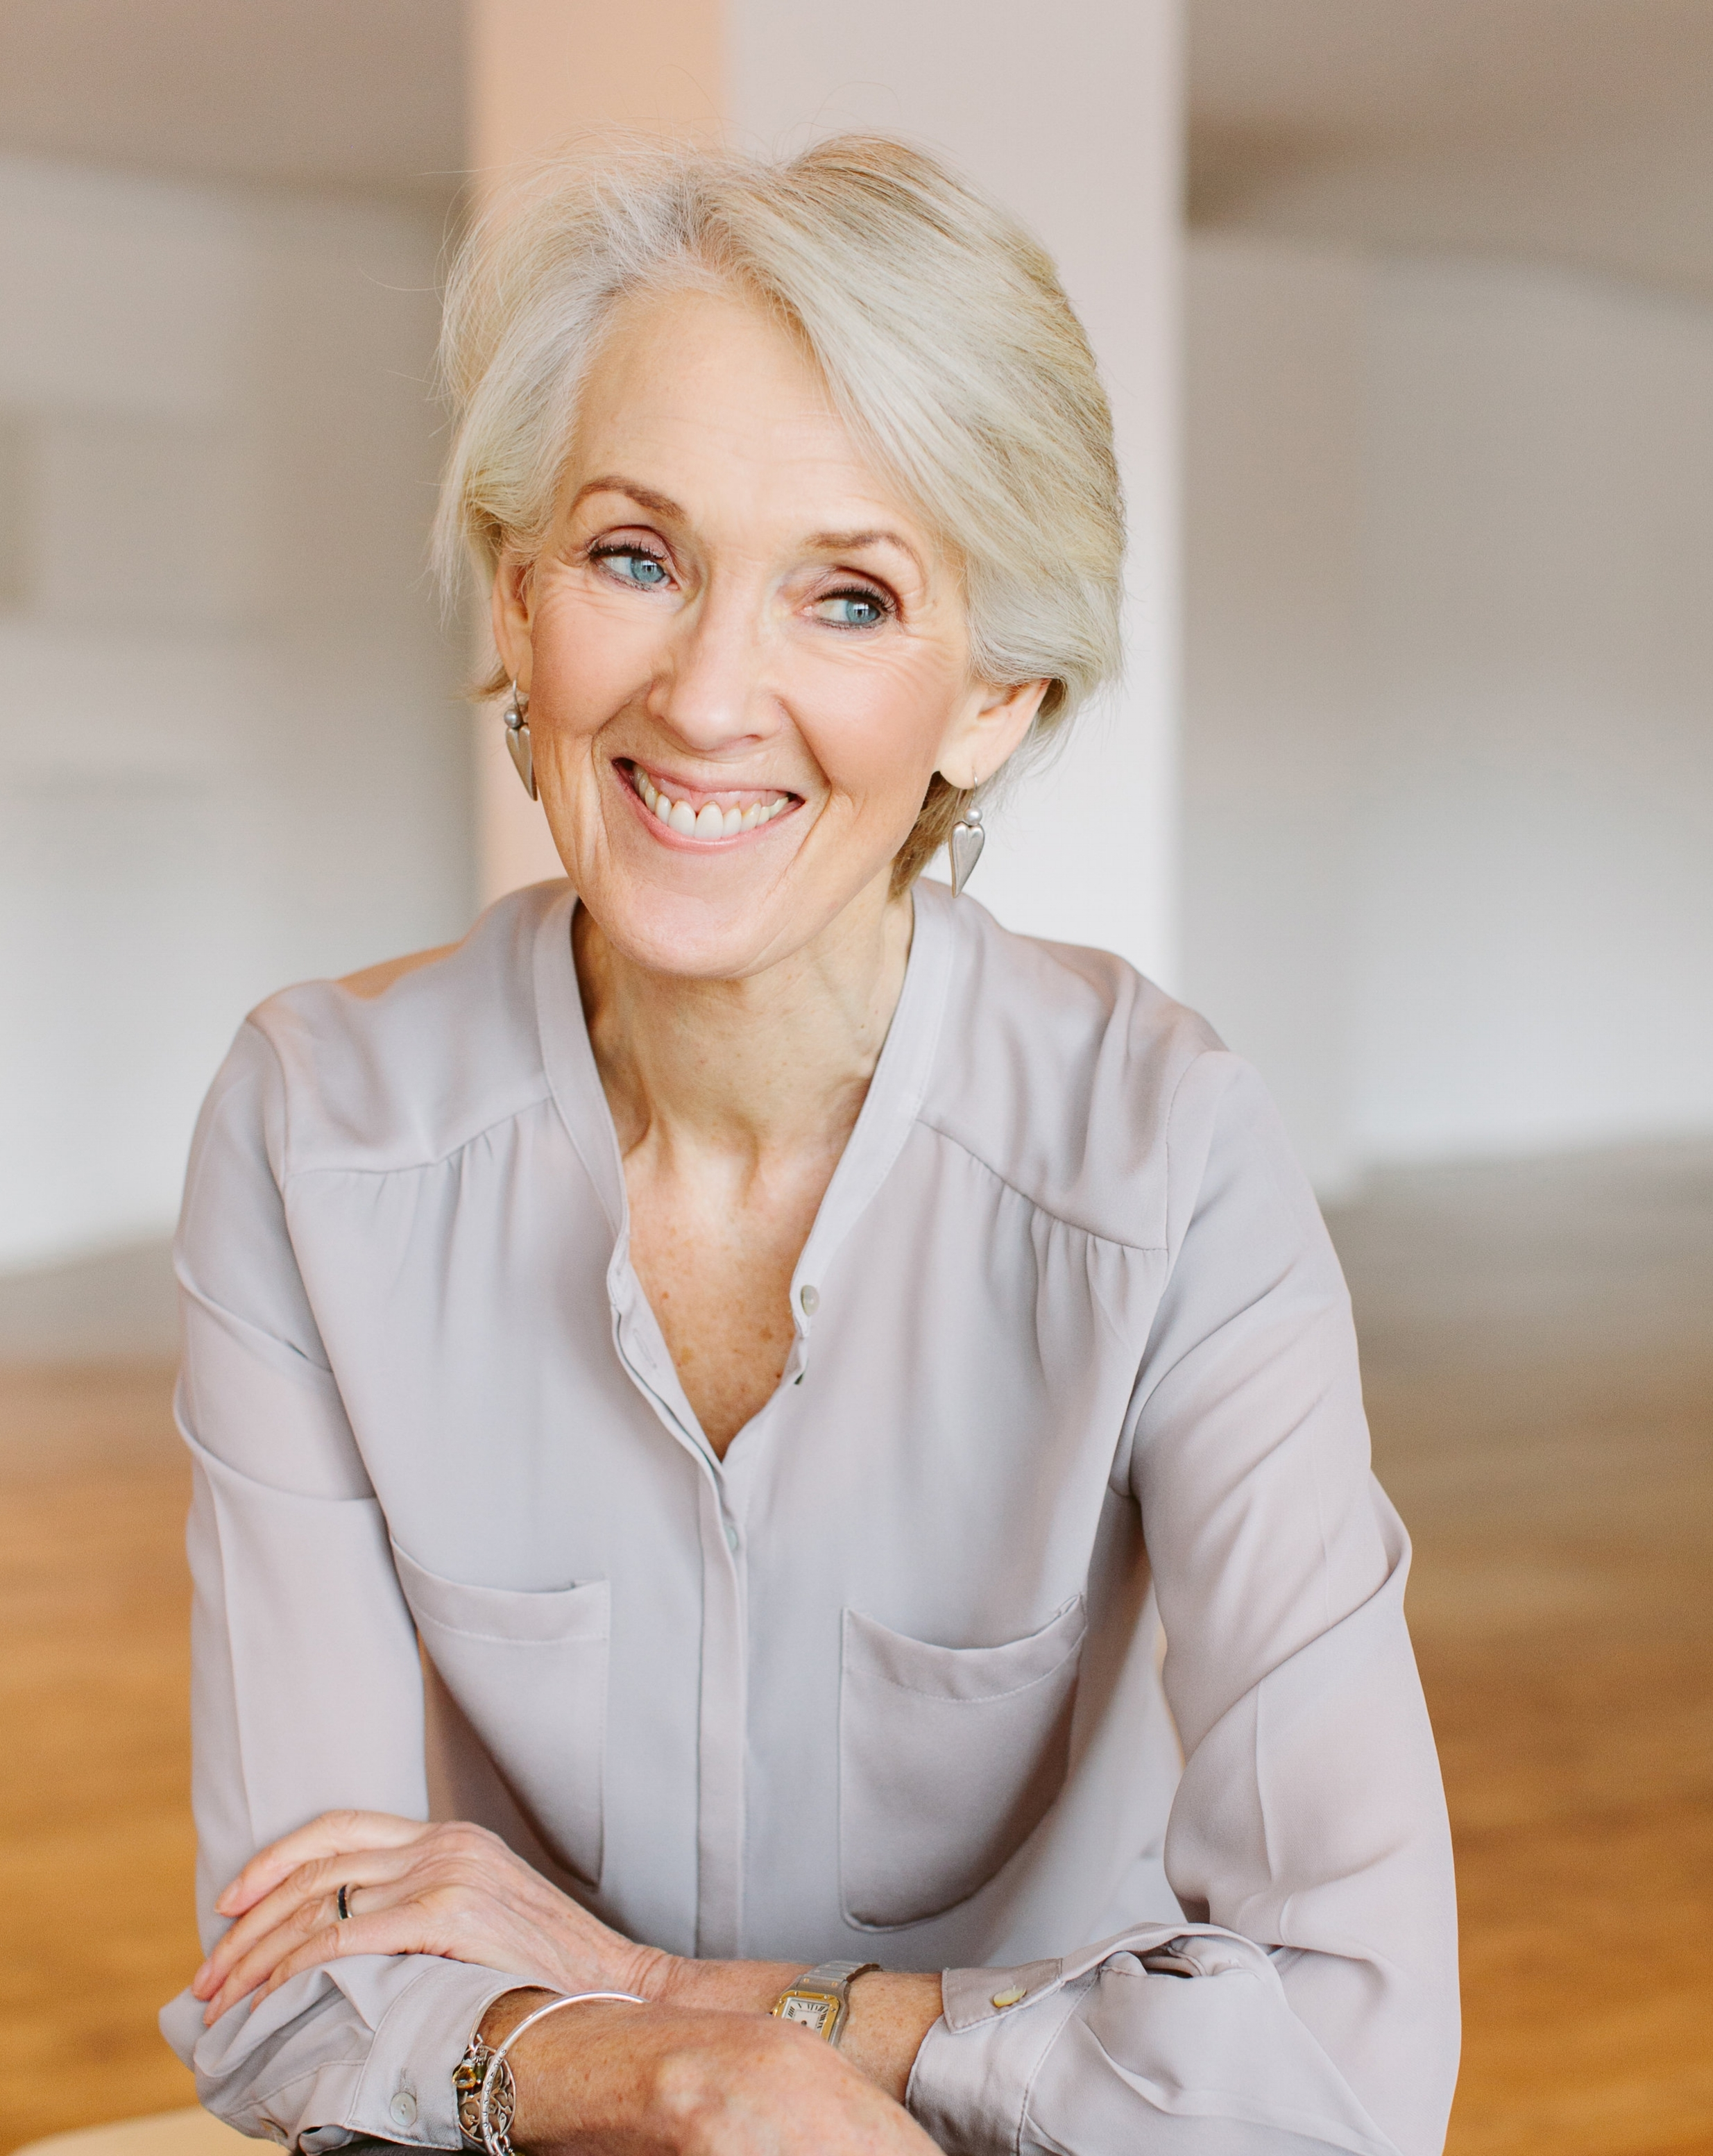 Joanna Trollope Author photo 2017.jpg